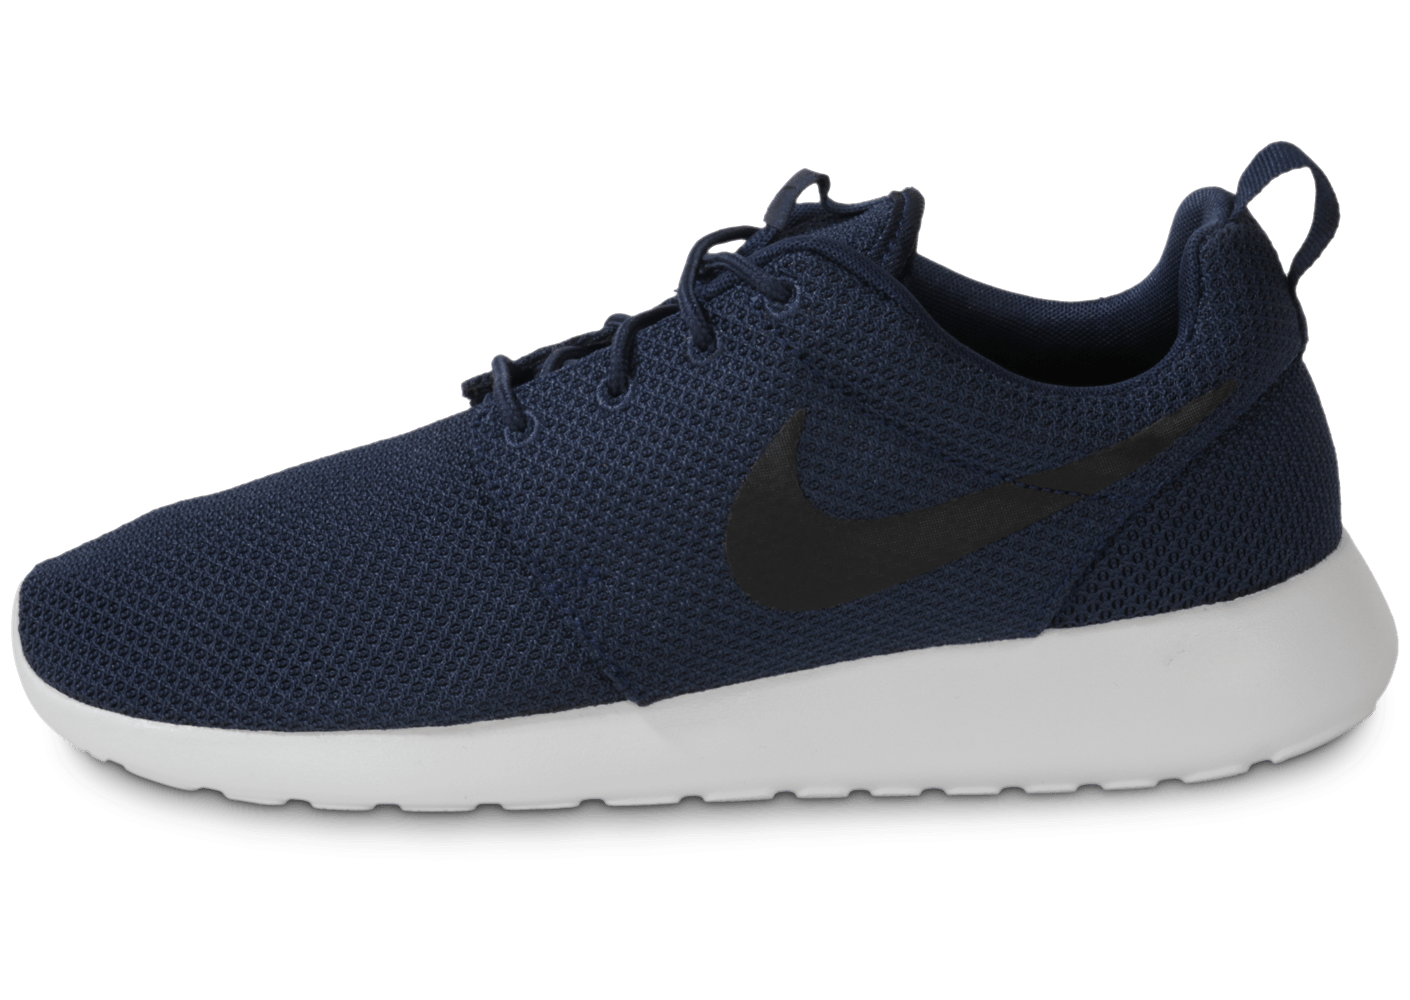 on wholesale sports shoes later Nike Roshe Run Bleu Marine - Chaussures Baskets homme - Chausport